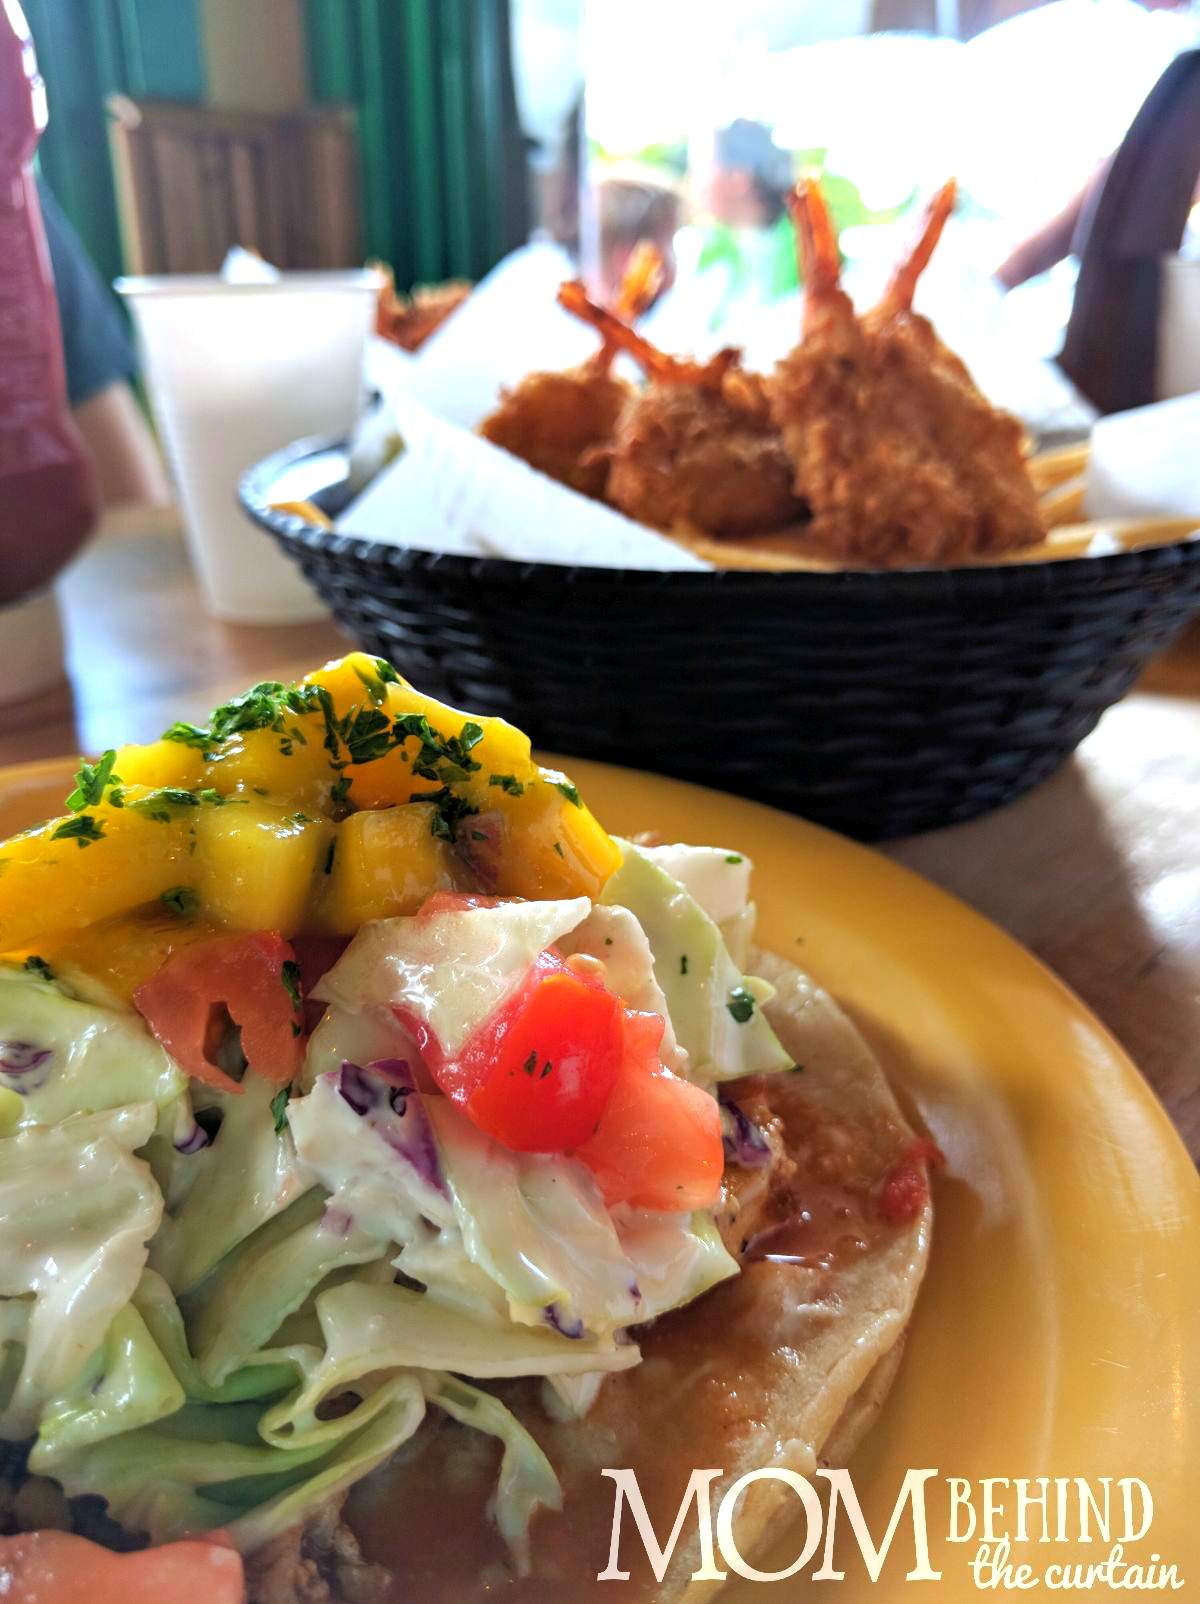 Best places to eat in Maui - don't miss out on delicious meals like these coconut shrimp and Hawaiian fish tacos with tropical mango and slaw.